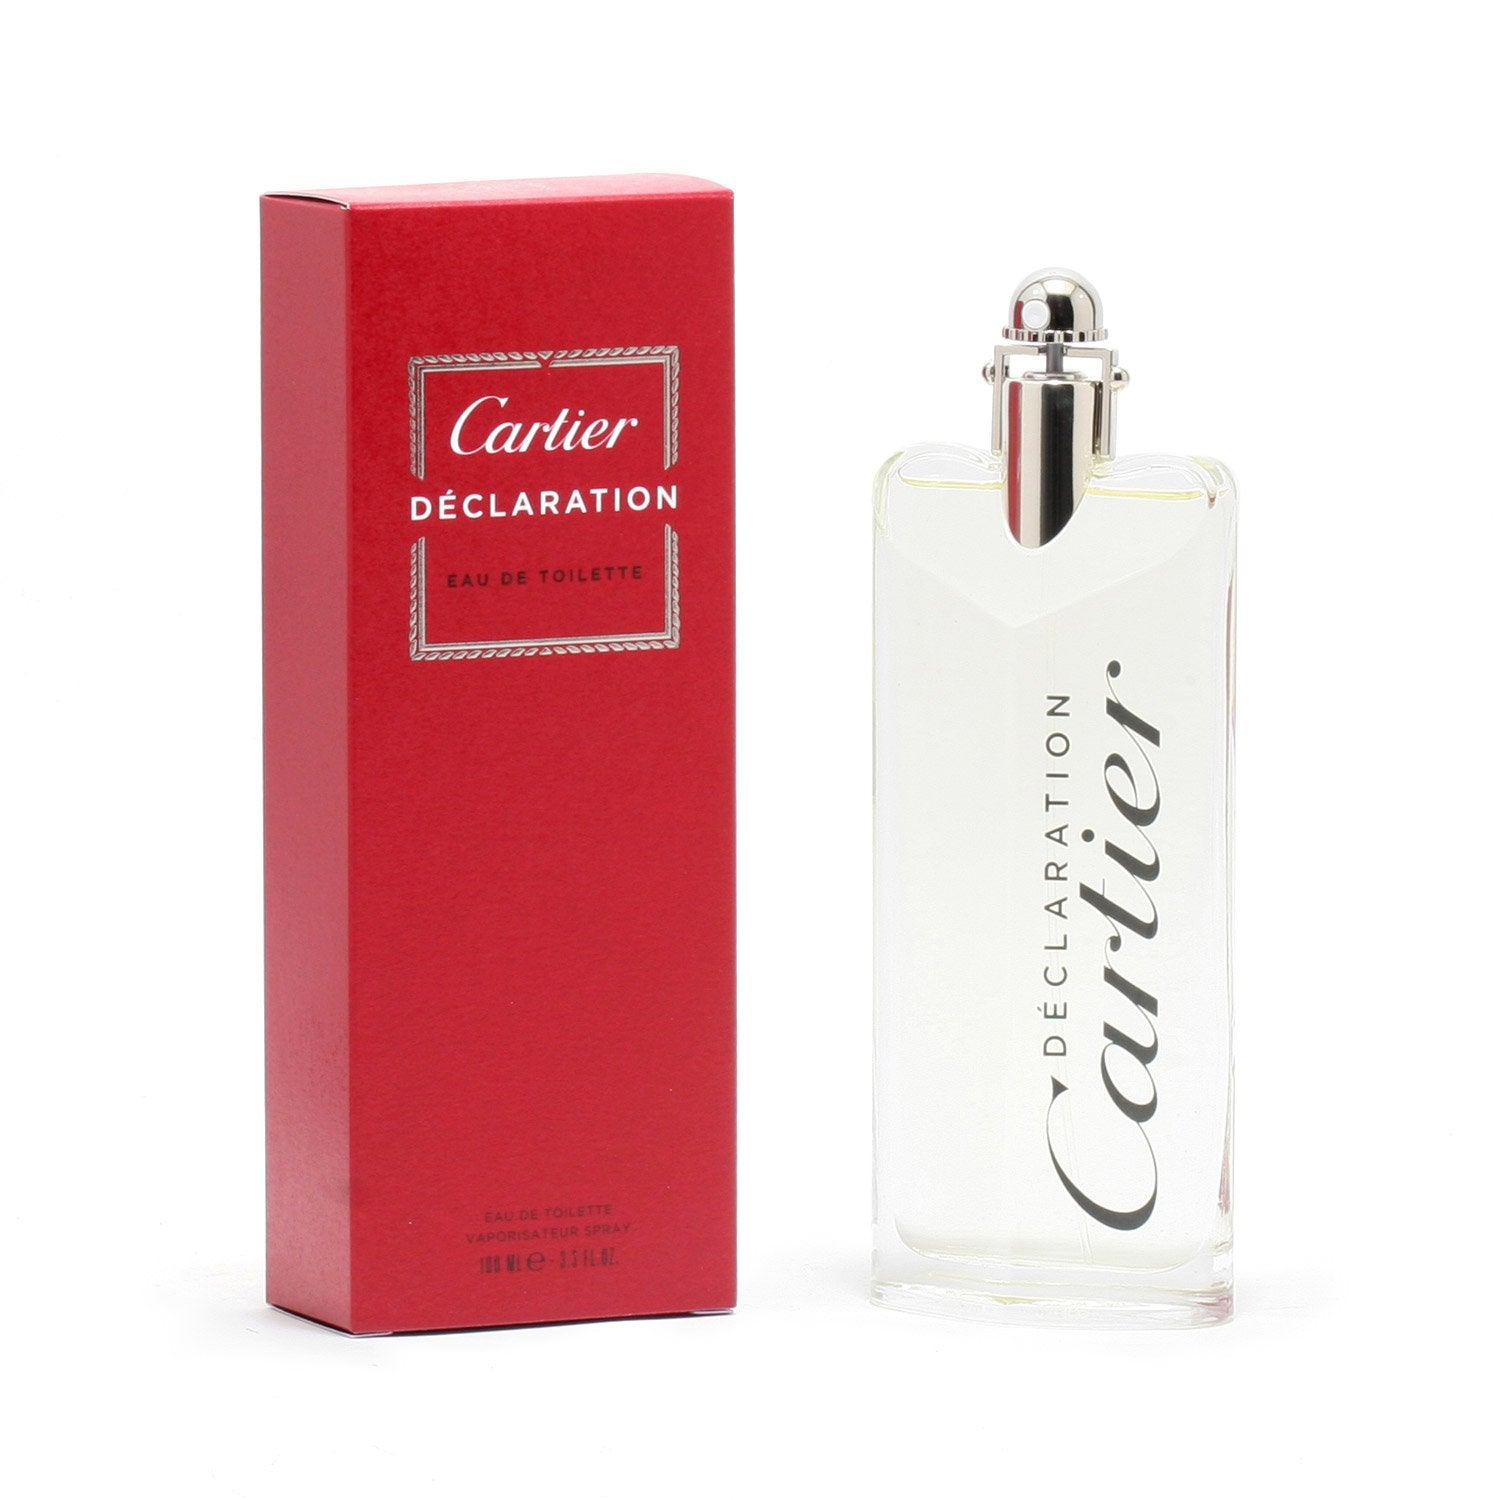 Cologne - DECLARATION FOR MEN BY CARTIER - EAU DE TOILETTE SPRAY, 3.3 OZ